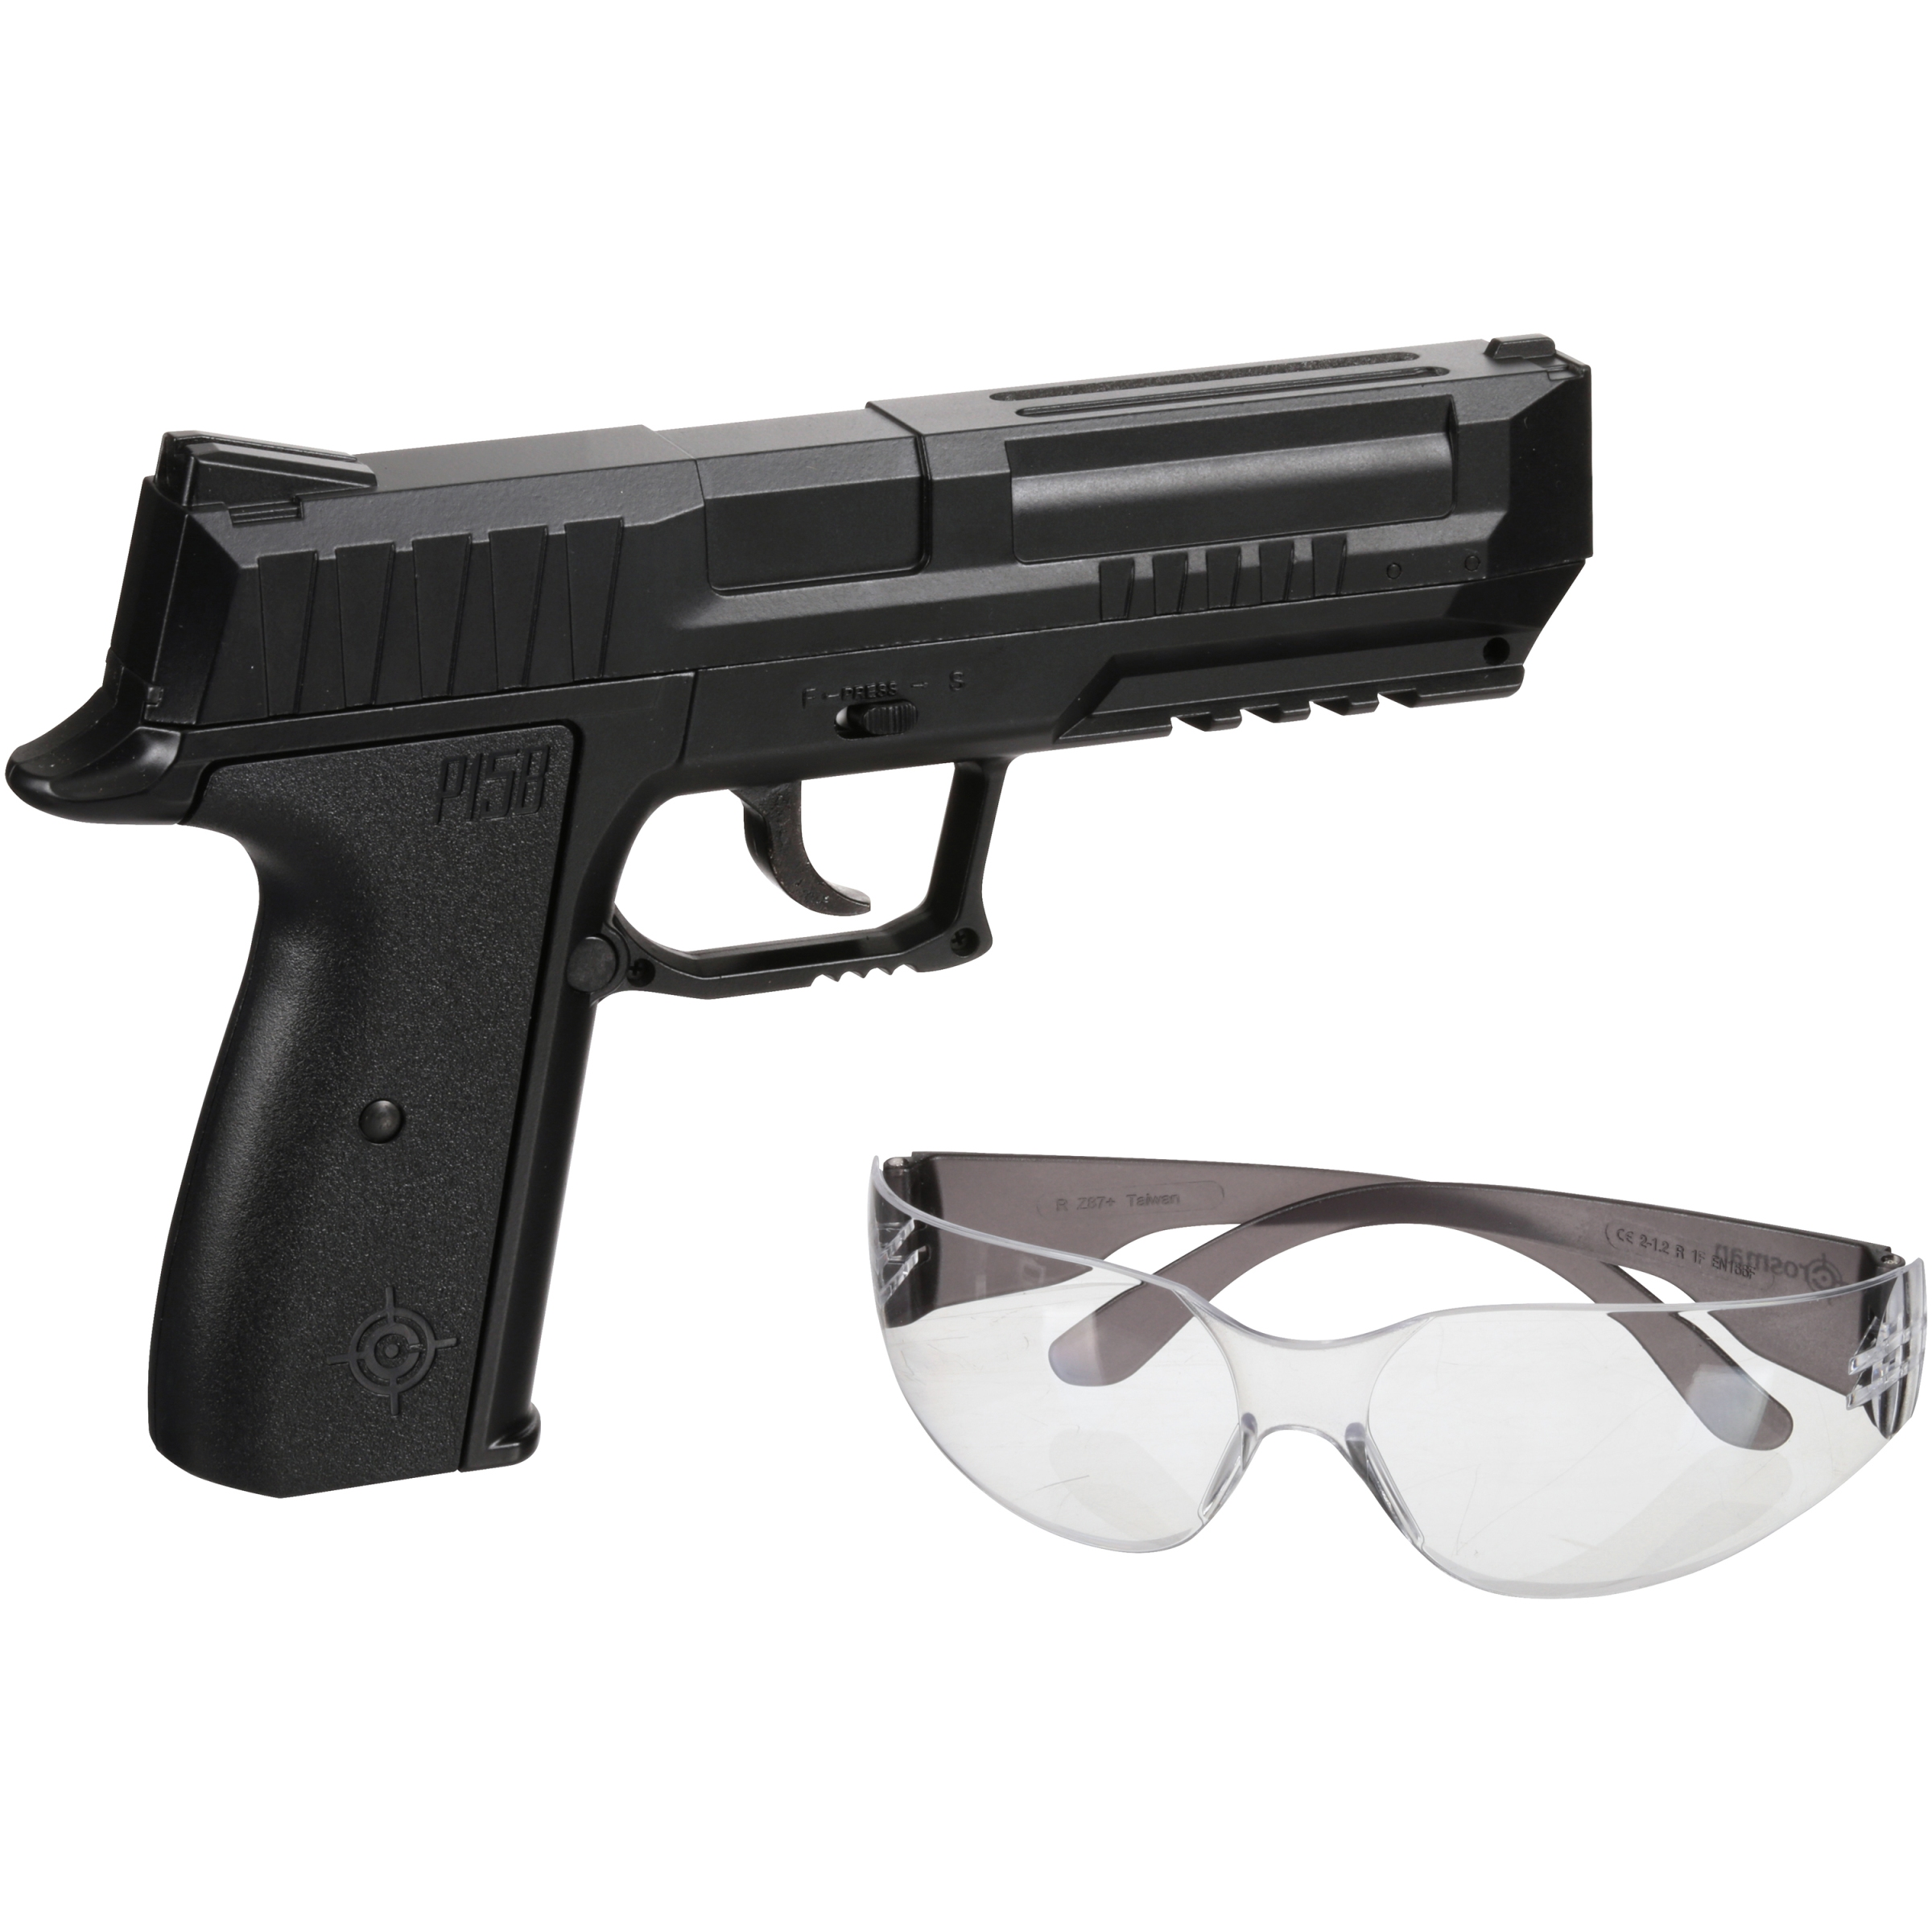 Crosman P15BKT Air Pistol Kit w/Gun, 350 BB's, Safety Glass